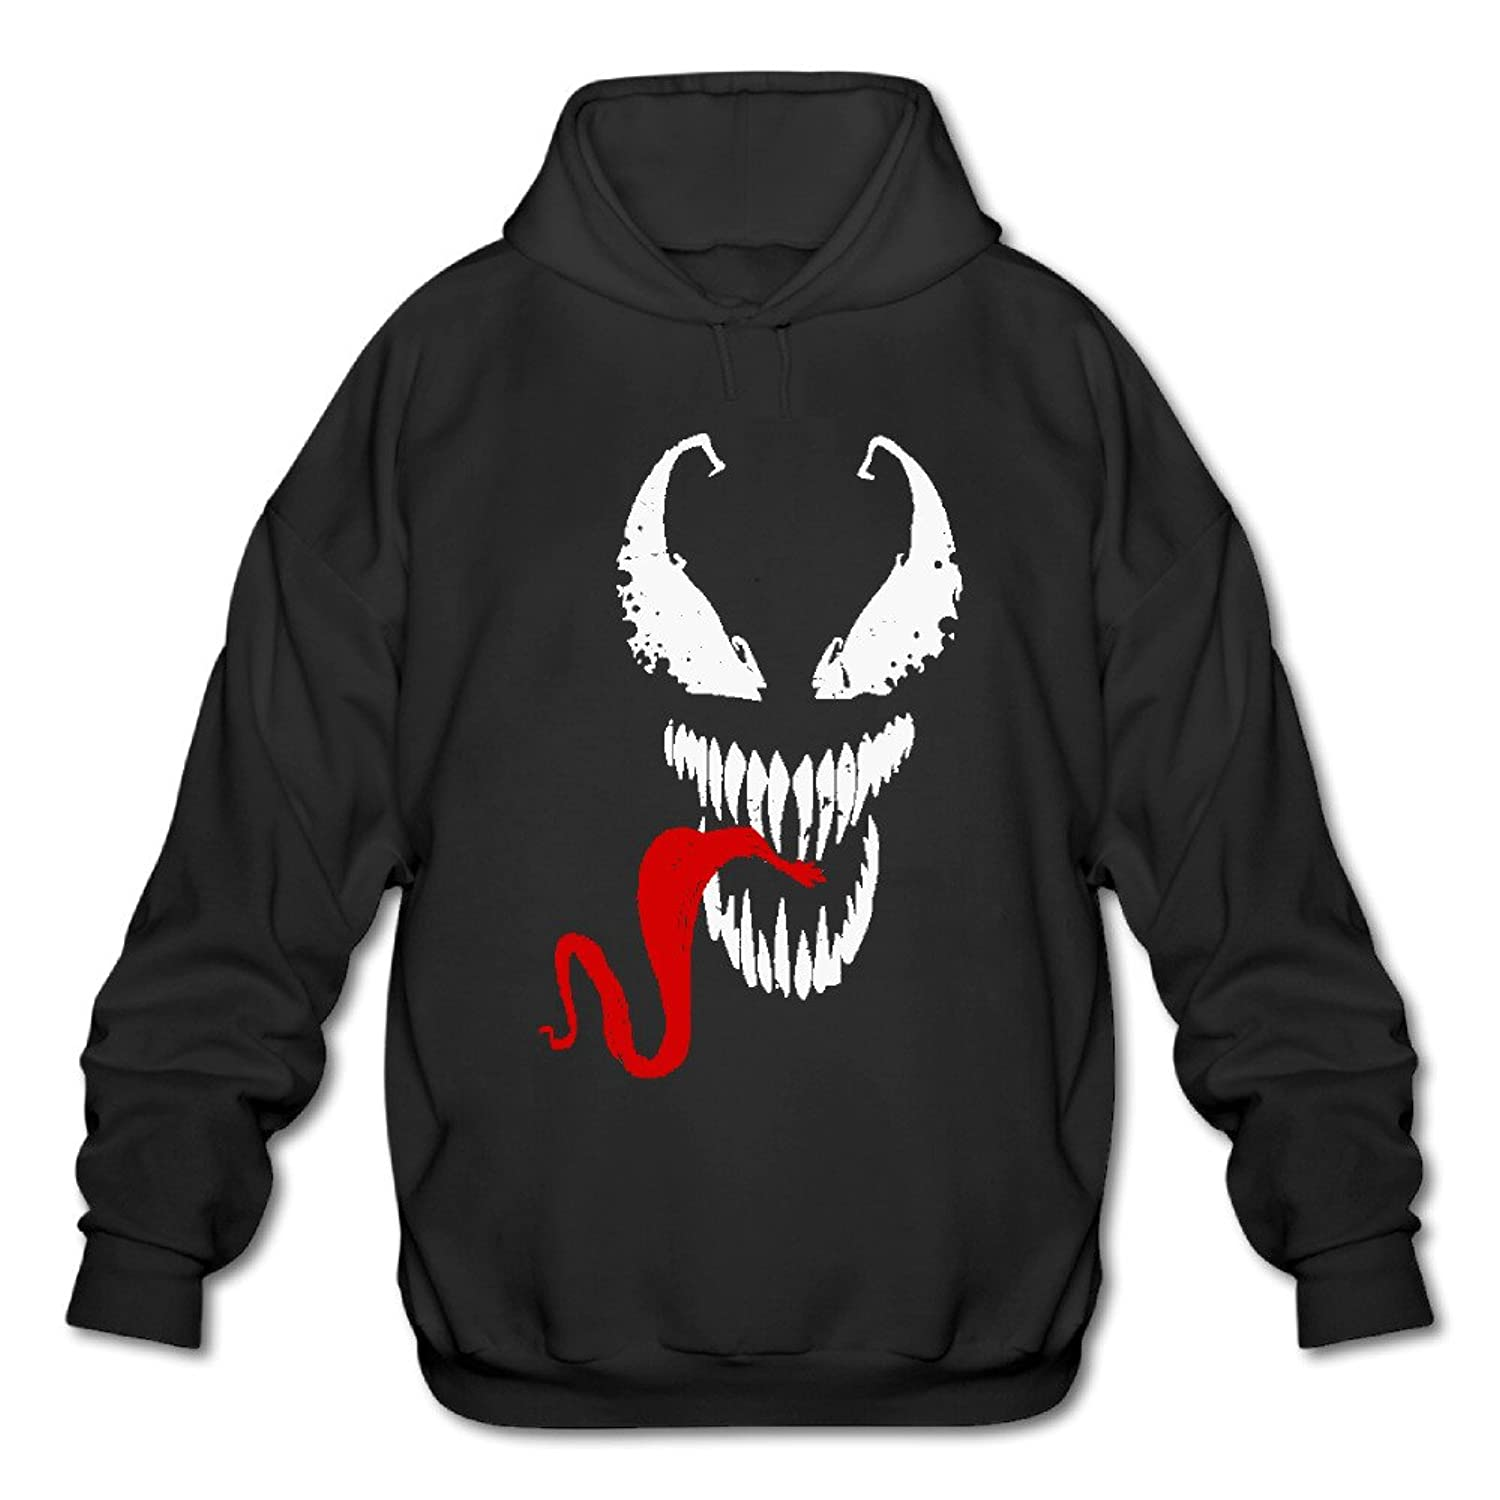 Venom Shop562 adult Hoodie Sweatshirt T-shirts Slim fit Great